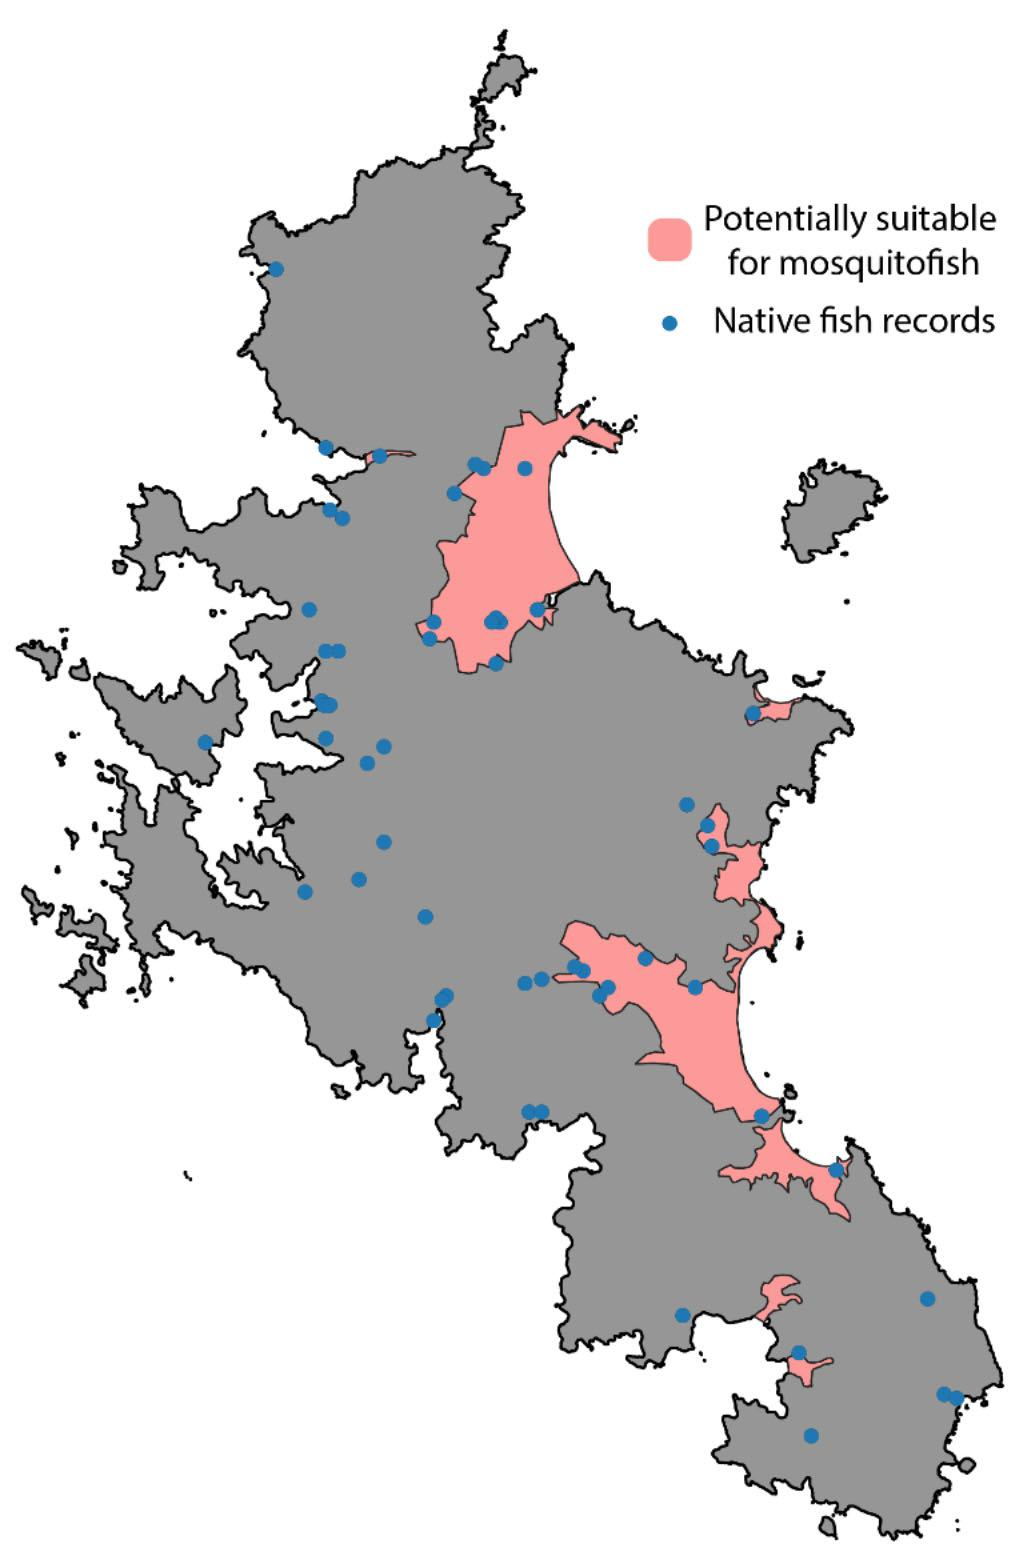 Figure 1: Aotea | Great Barrier, with potentially suitable habitat for mosquitofish shown in pink. Blue dots are recorded sightings of native fish from the NZ Freshwater Fish Database (NZFFD) (1).